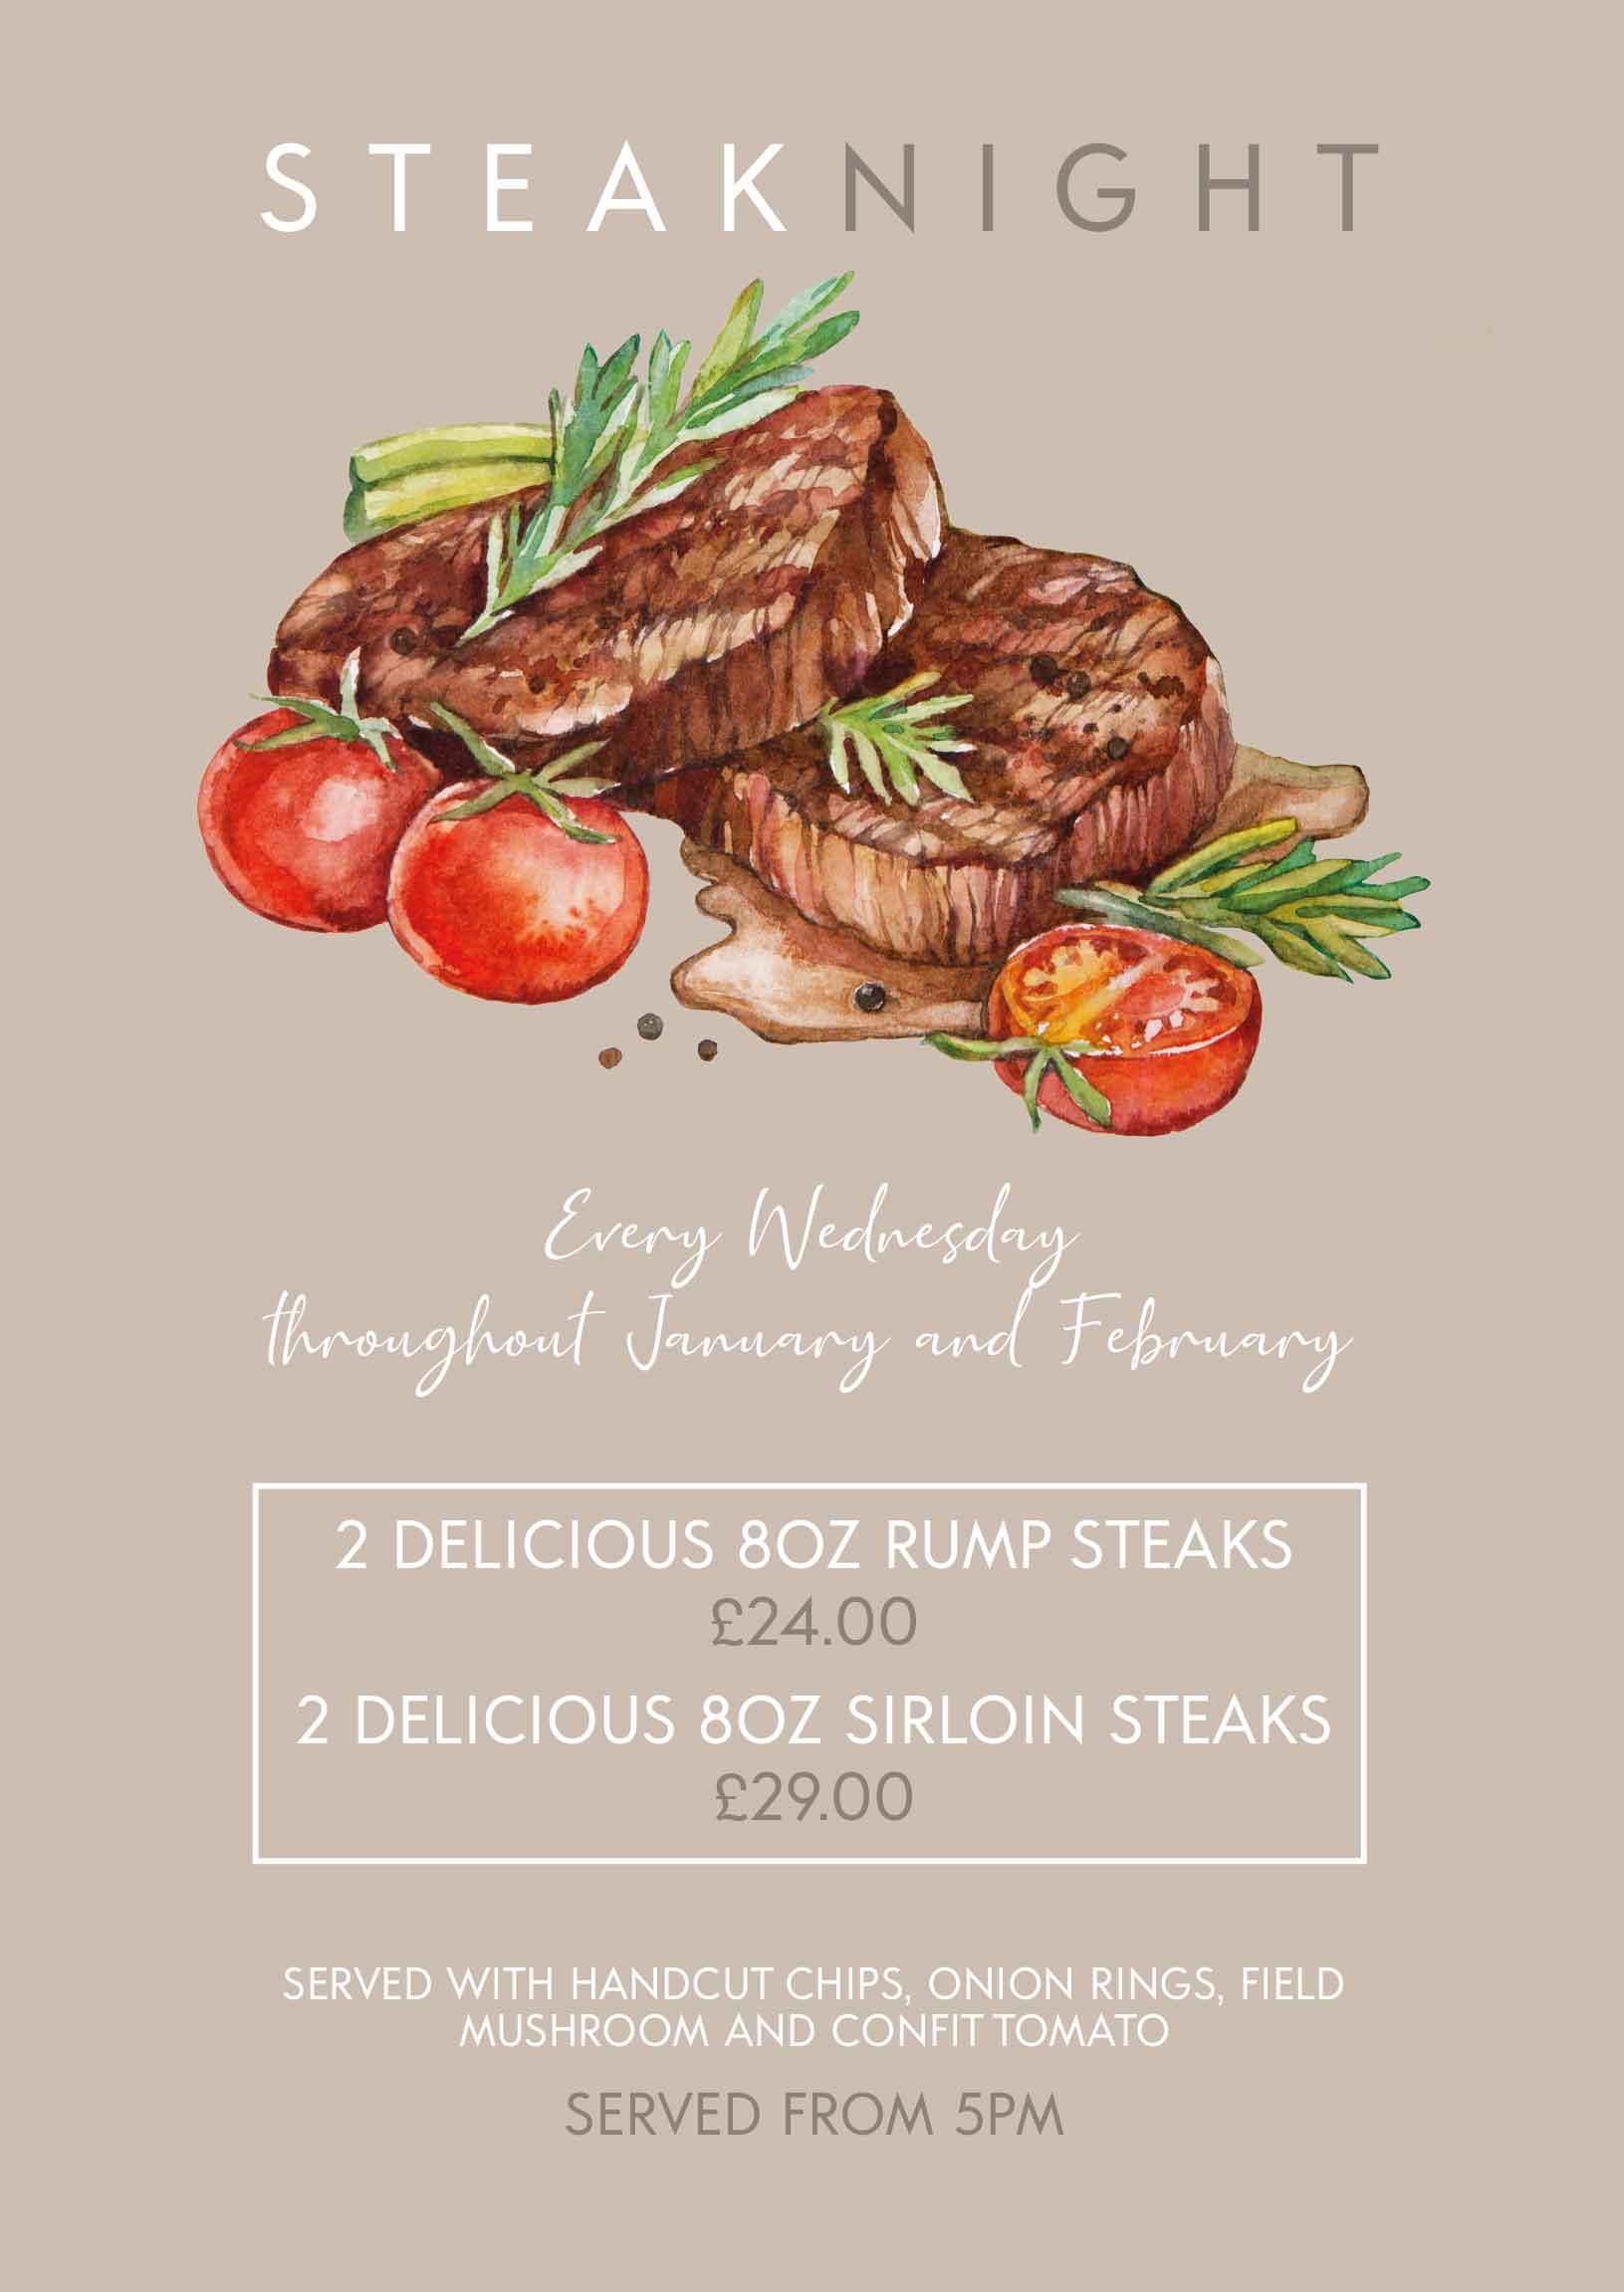 Whitehouses Steak Night Retford